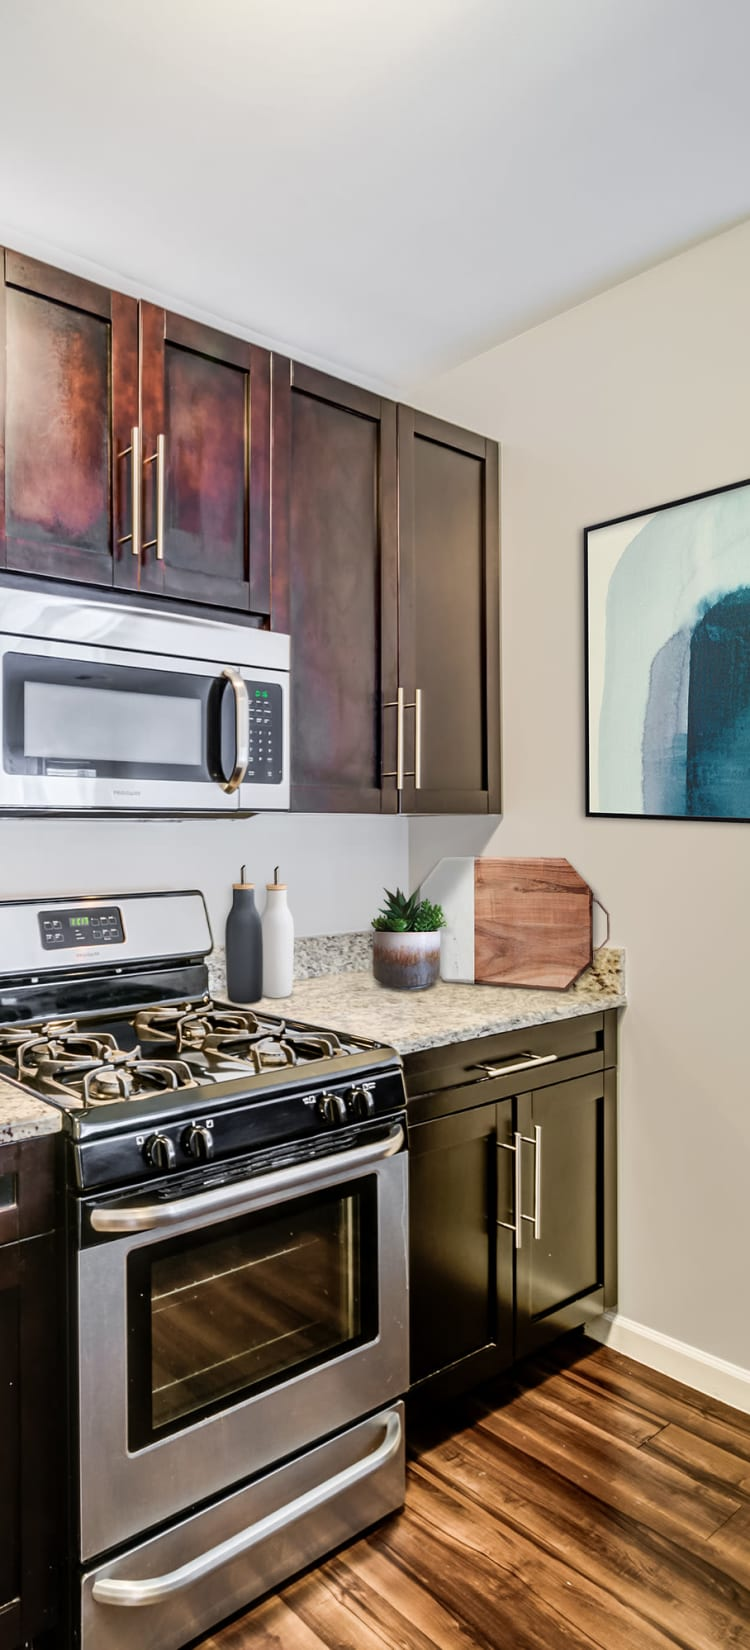 Modern kitchen with sleek, stainless-steel appliances in a model home at Sofi Gaslight Commons in South Orange, New Jersey